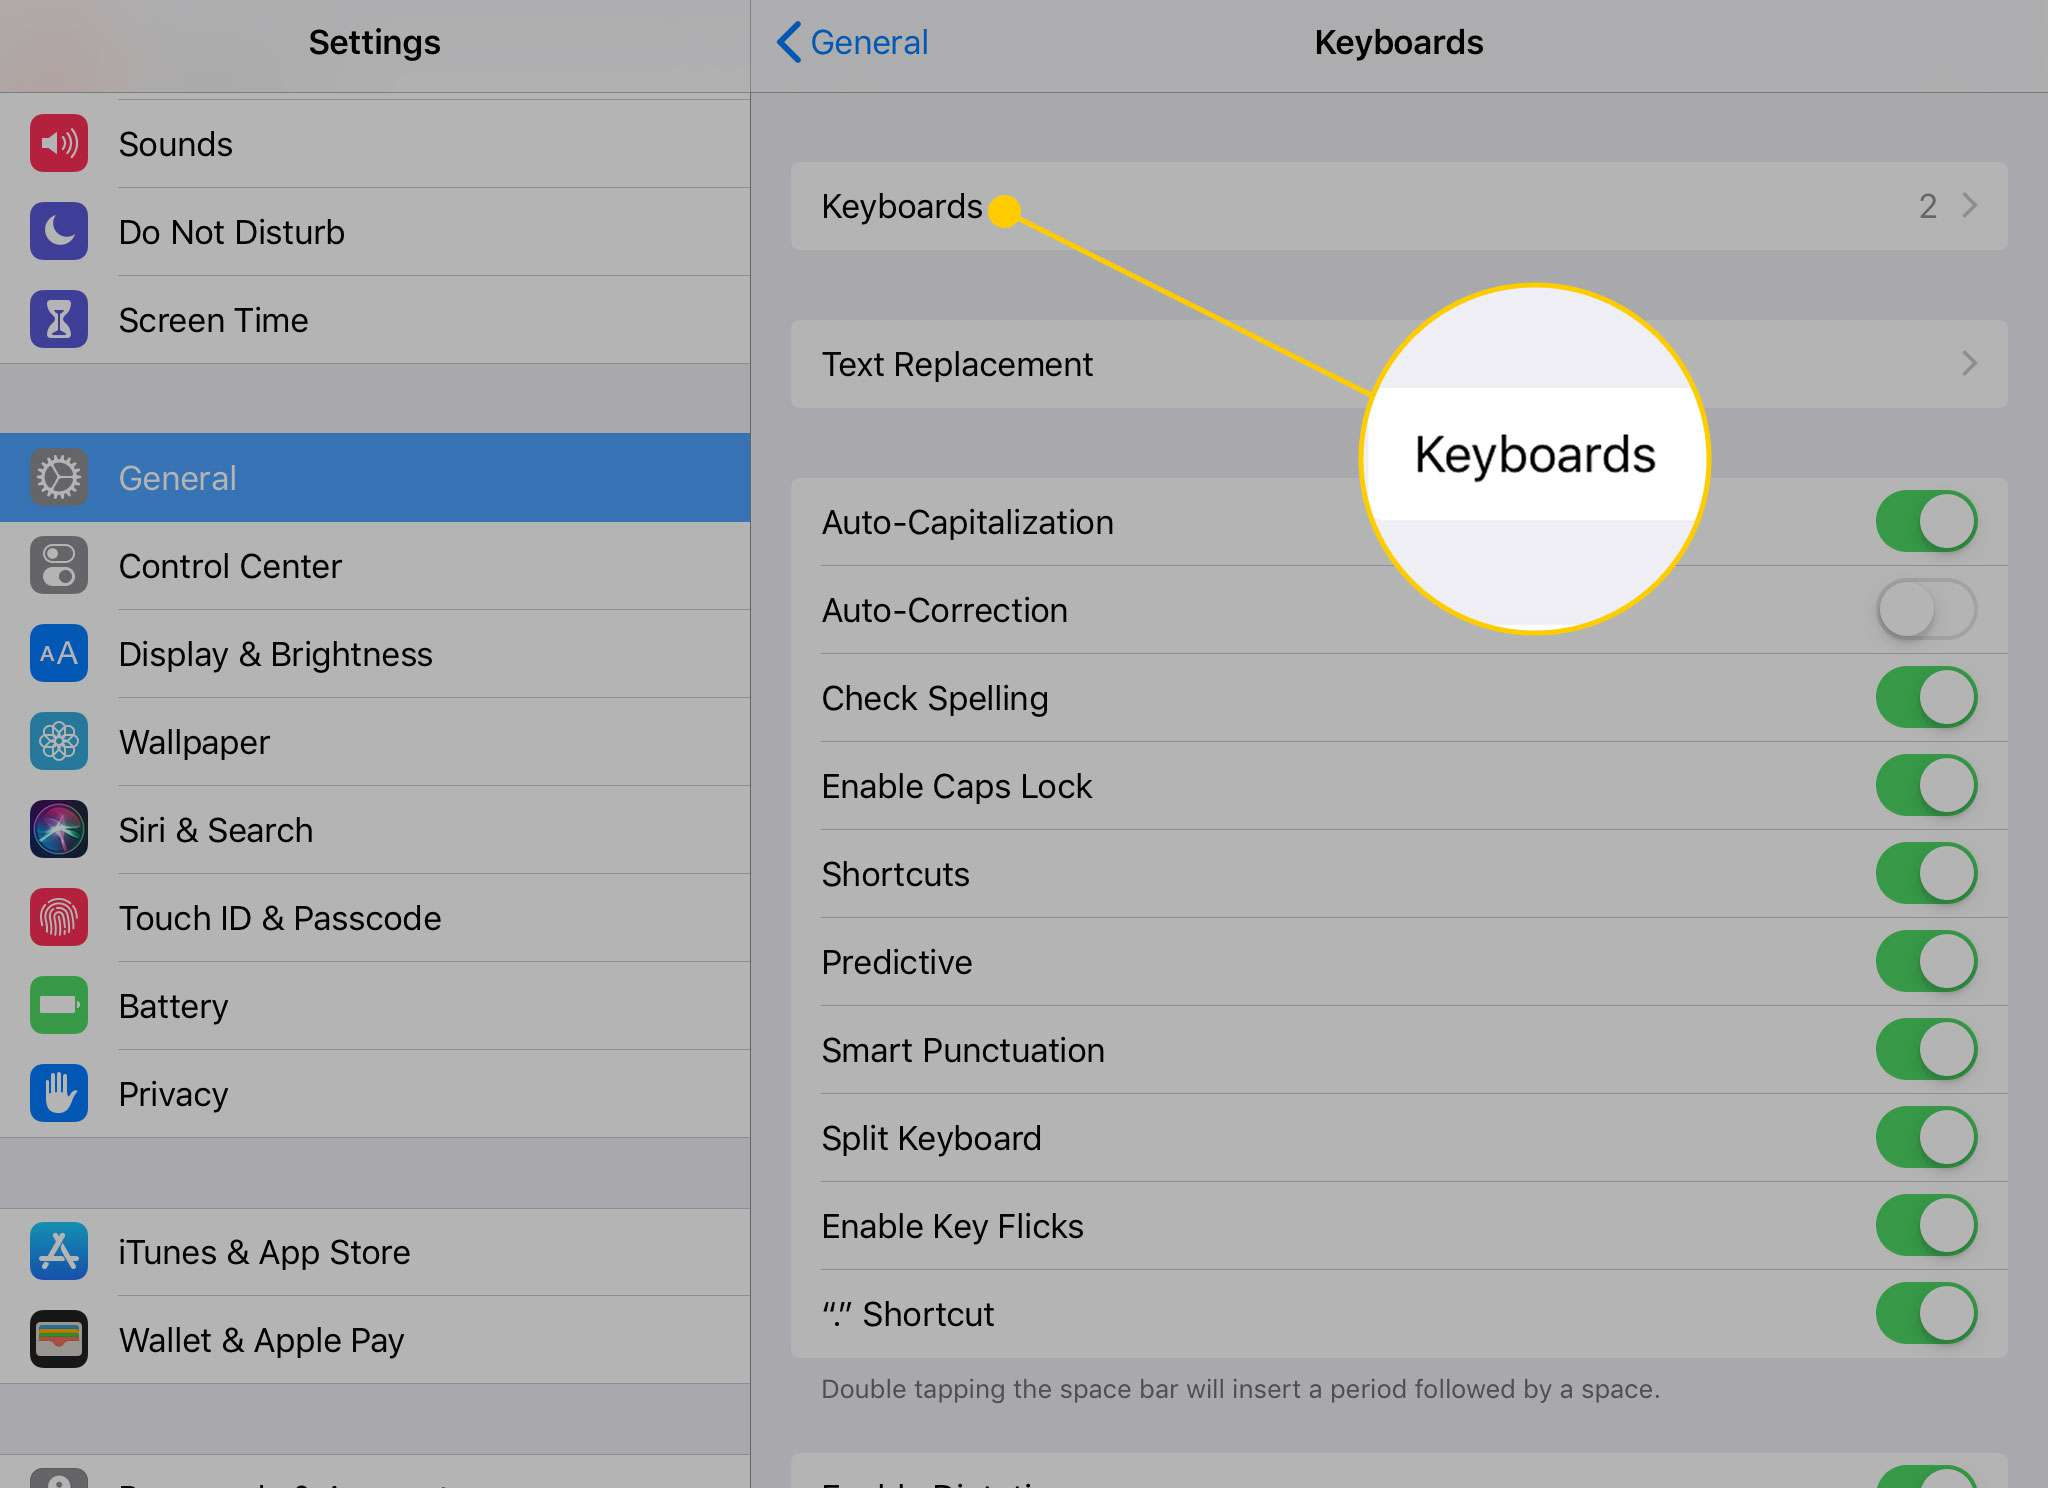 Keyboards settings on the iPad with the Keyboards heading highlighted